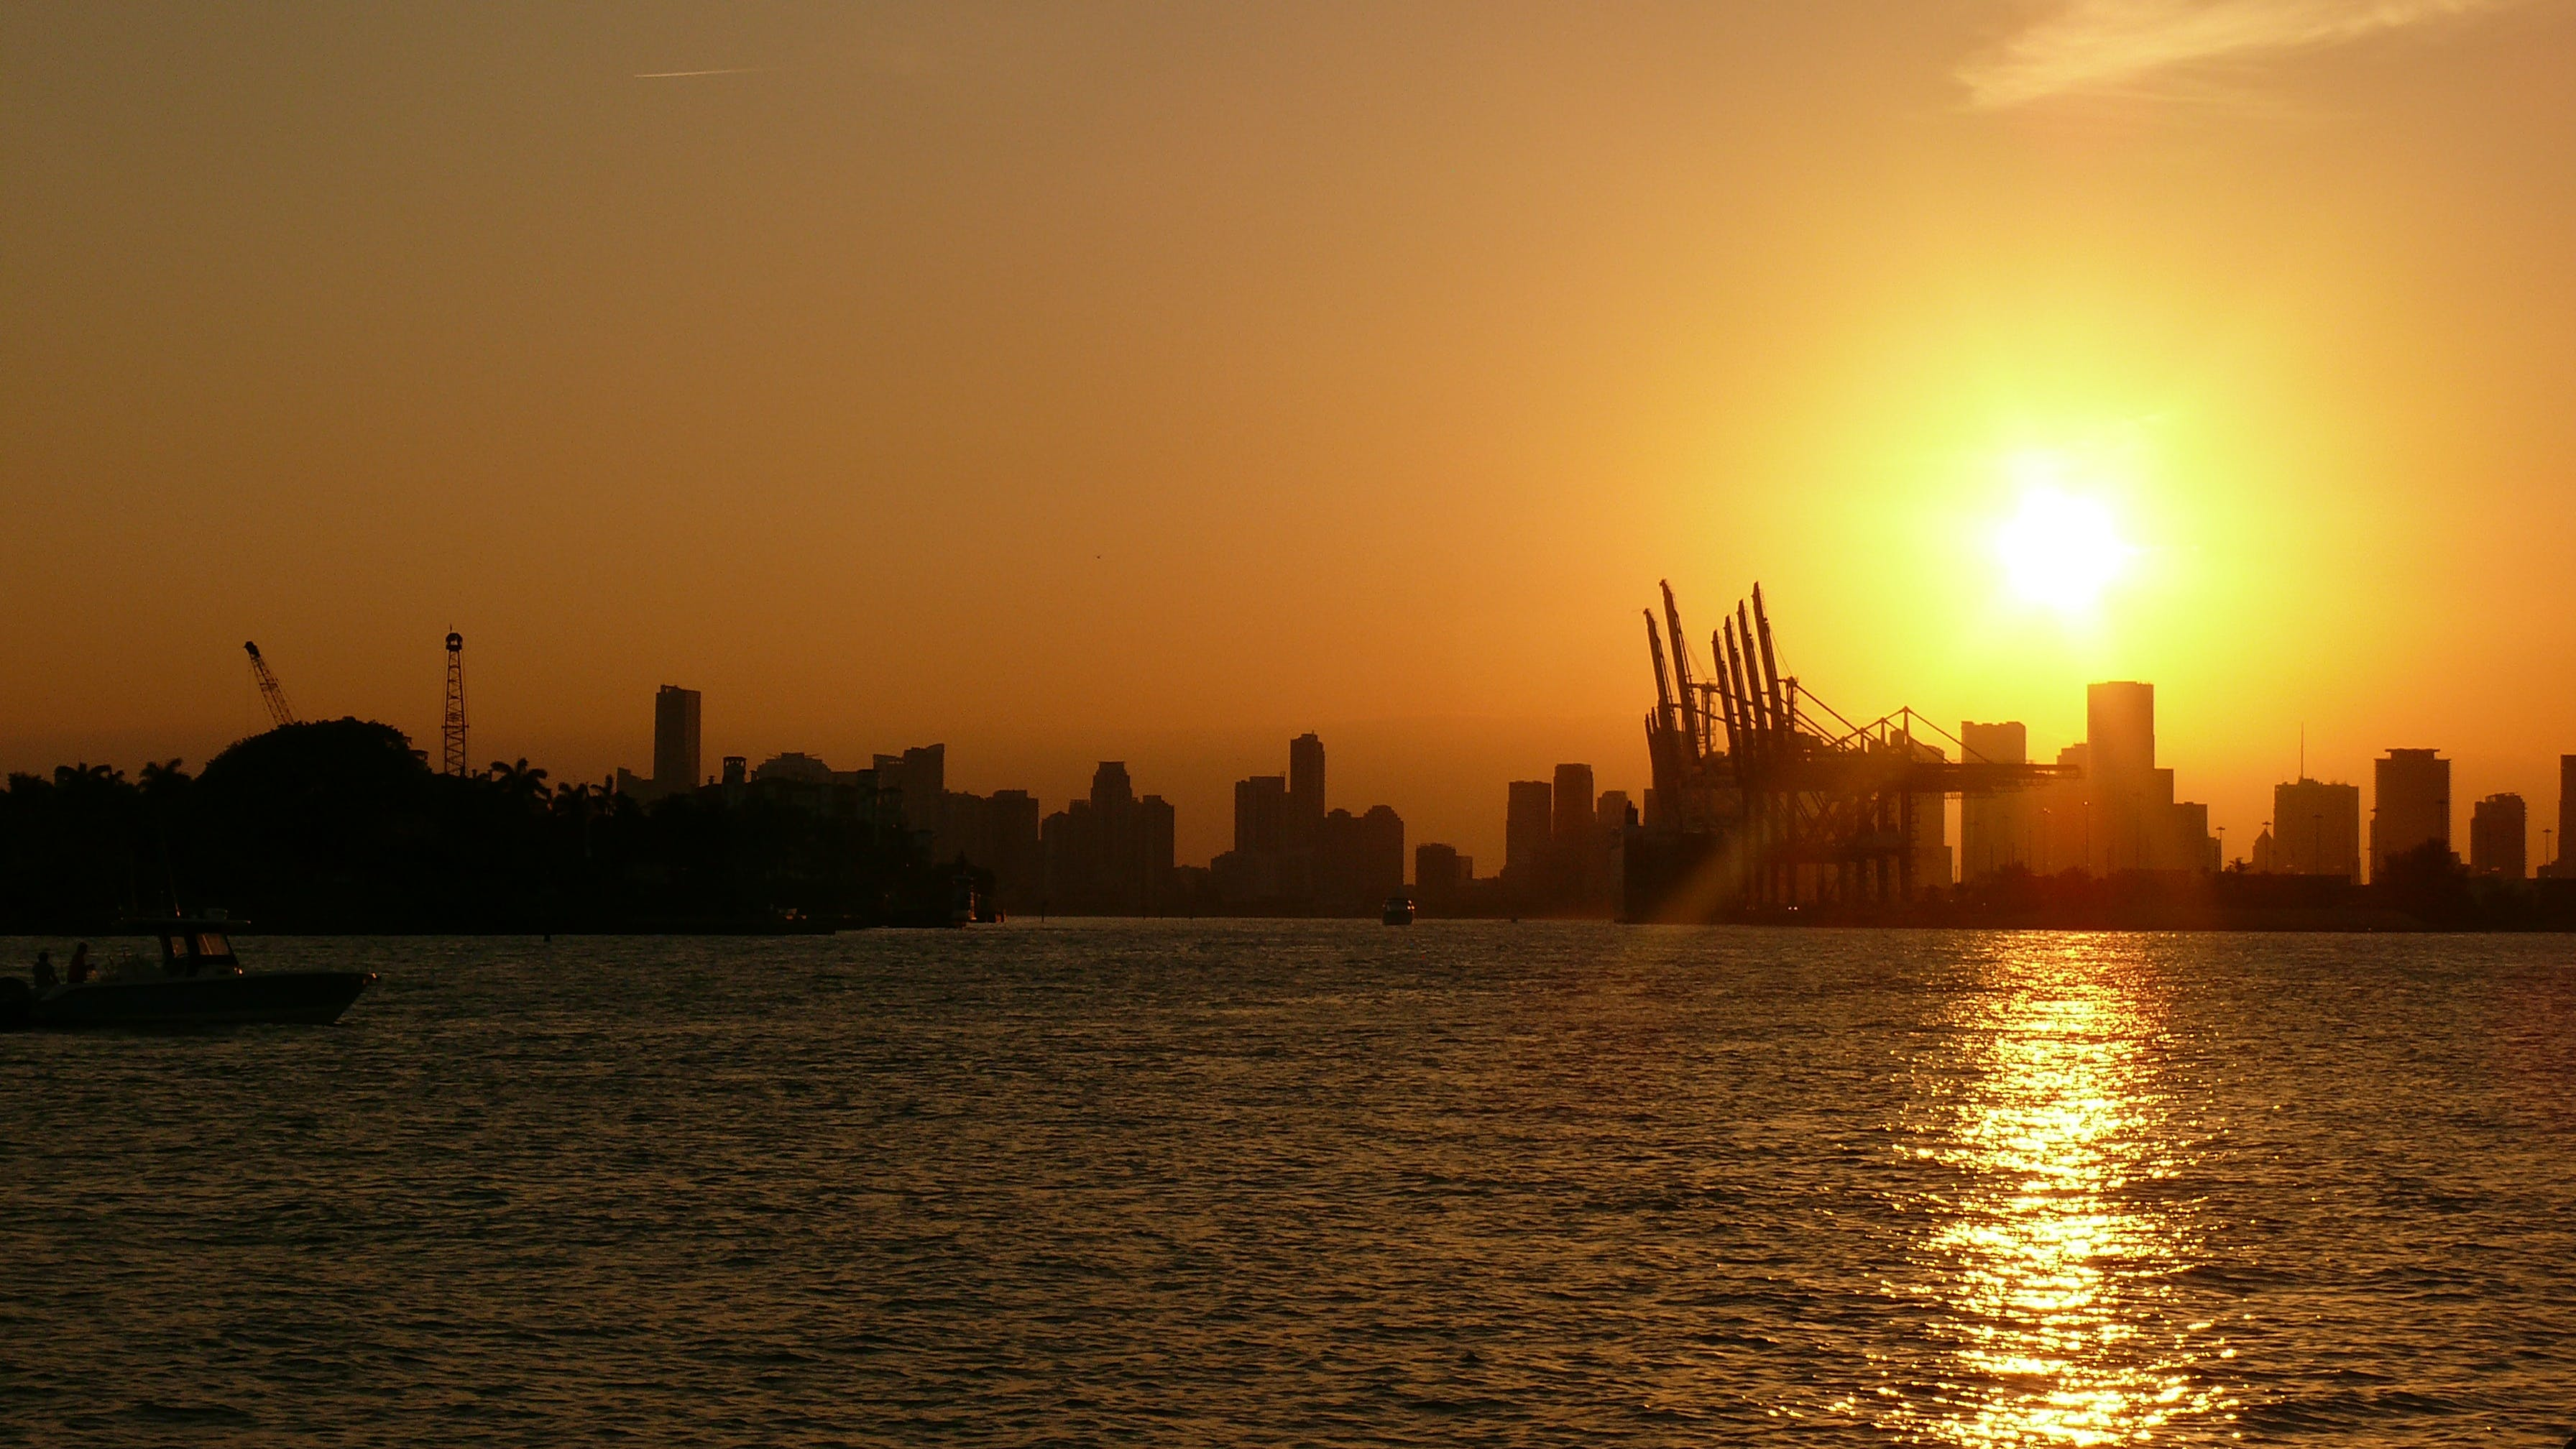 Silhouette of Buildings Near Body of Water Under Golden Hour